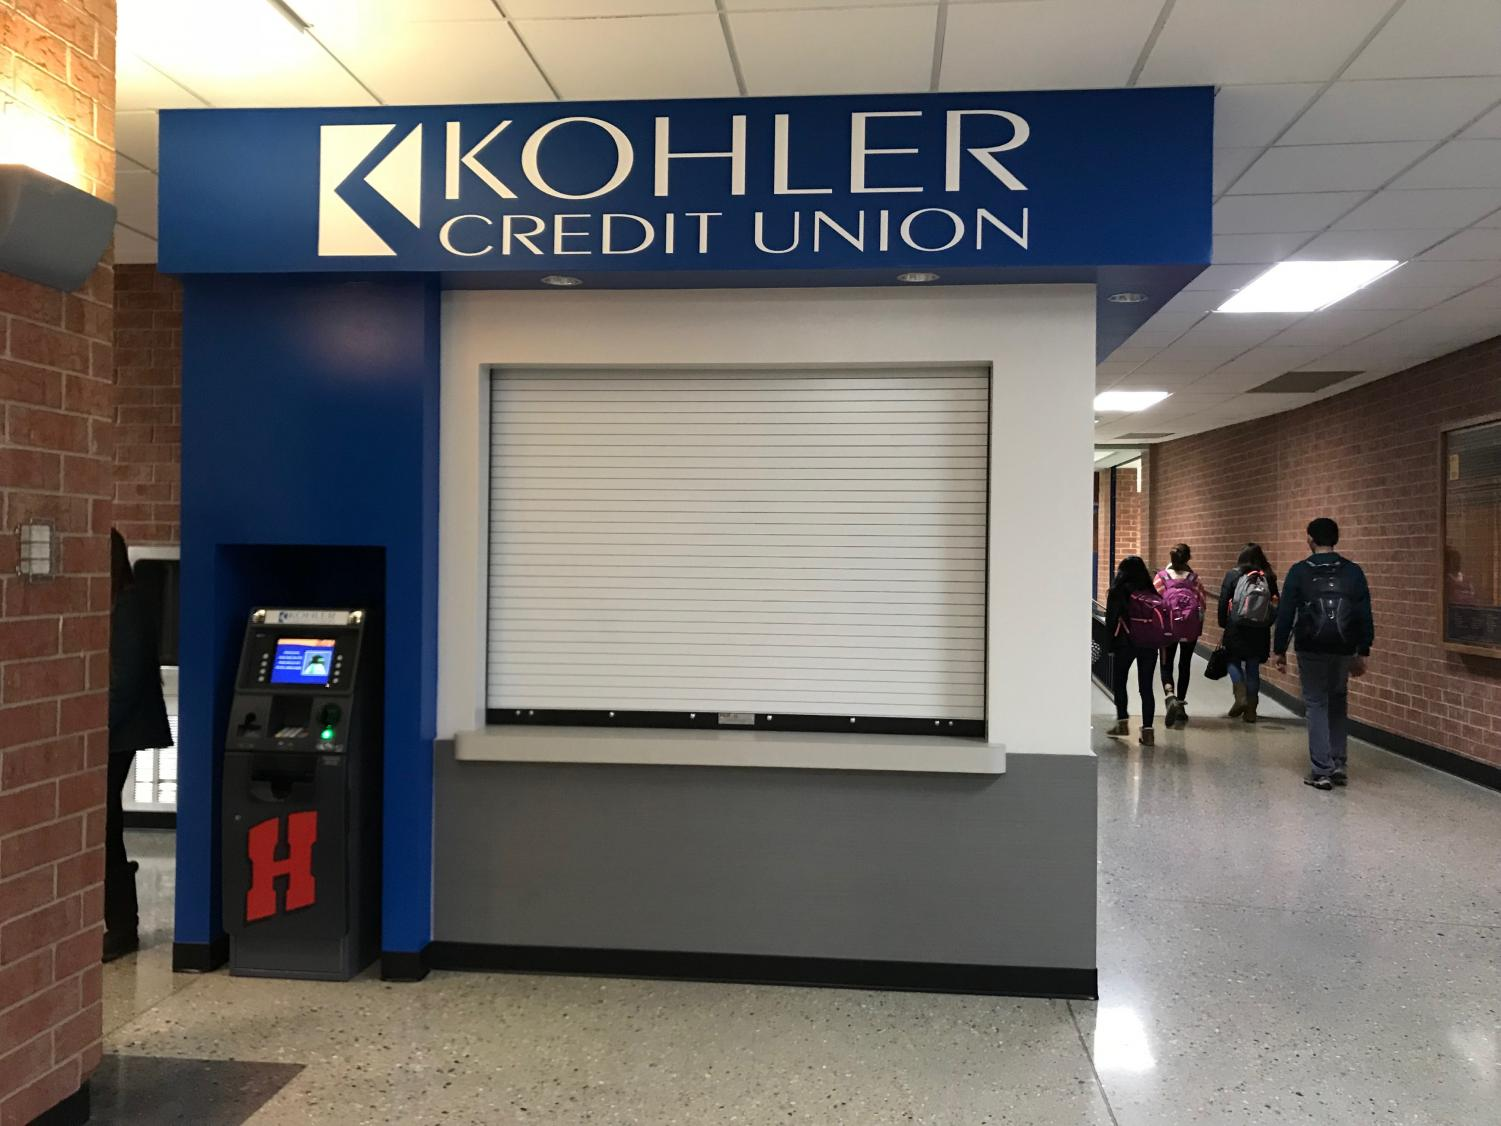 The new Kohler Credit Union branch is located within the field house.